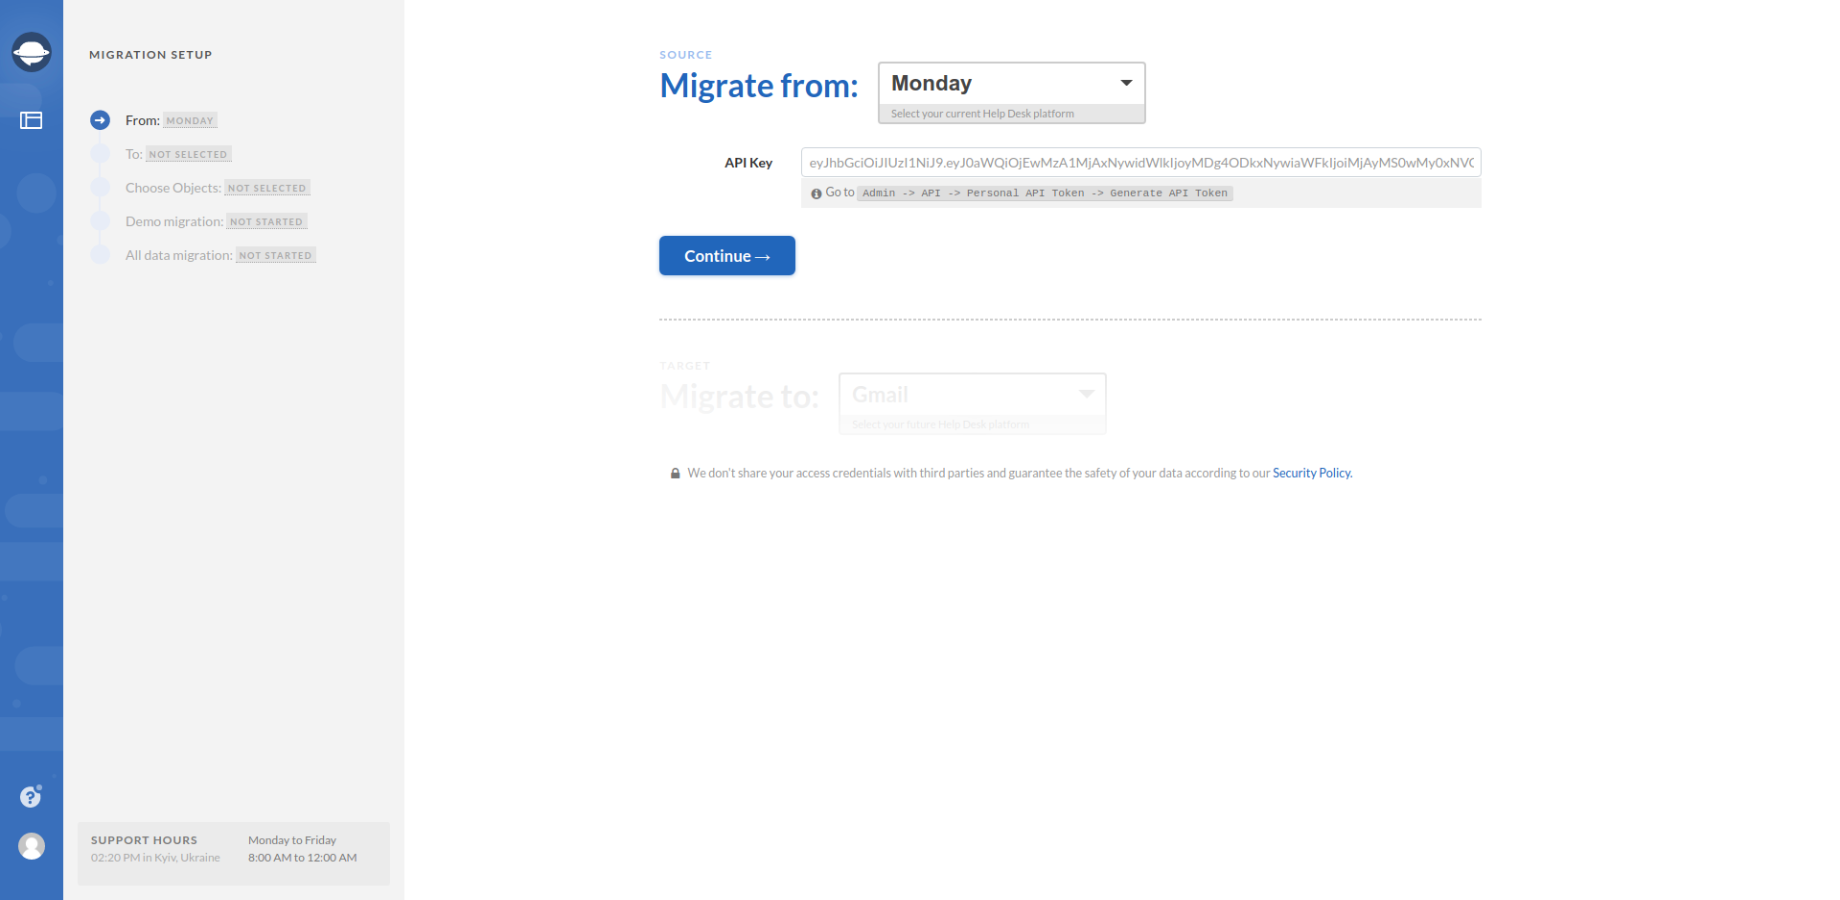 Monday as Data Migration Source